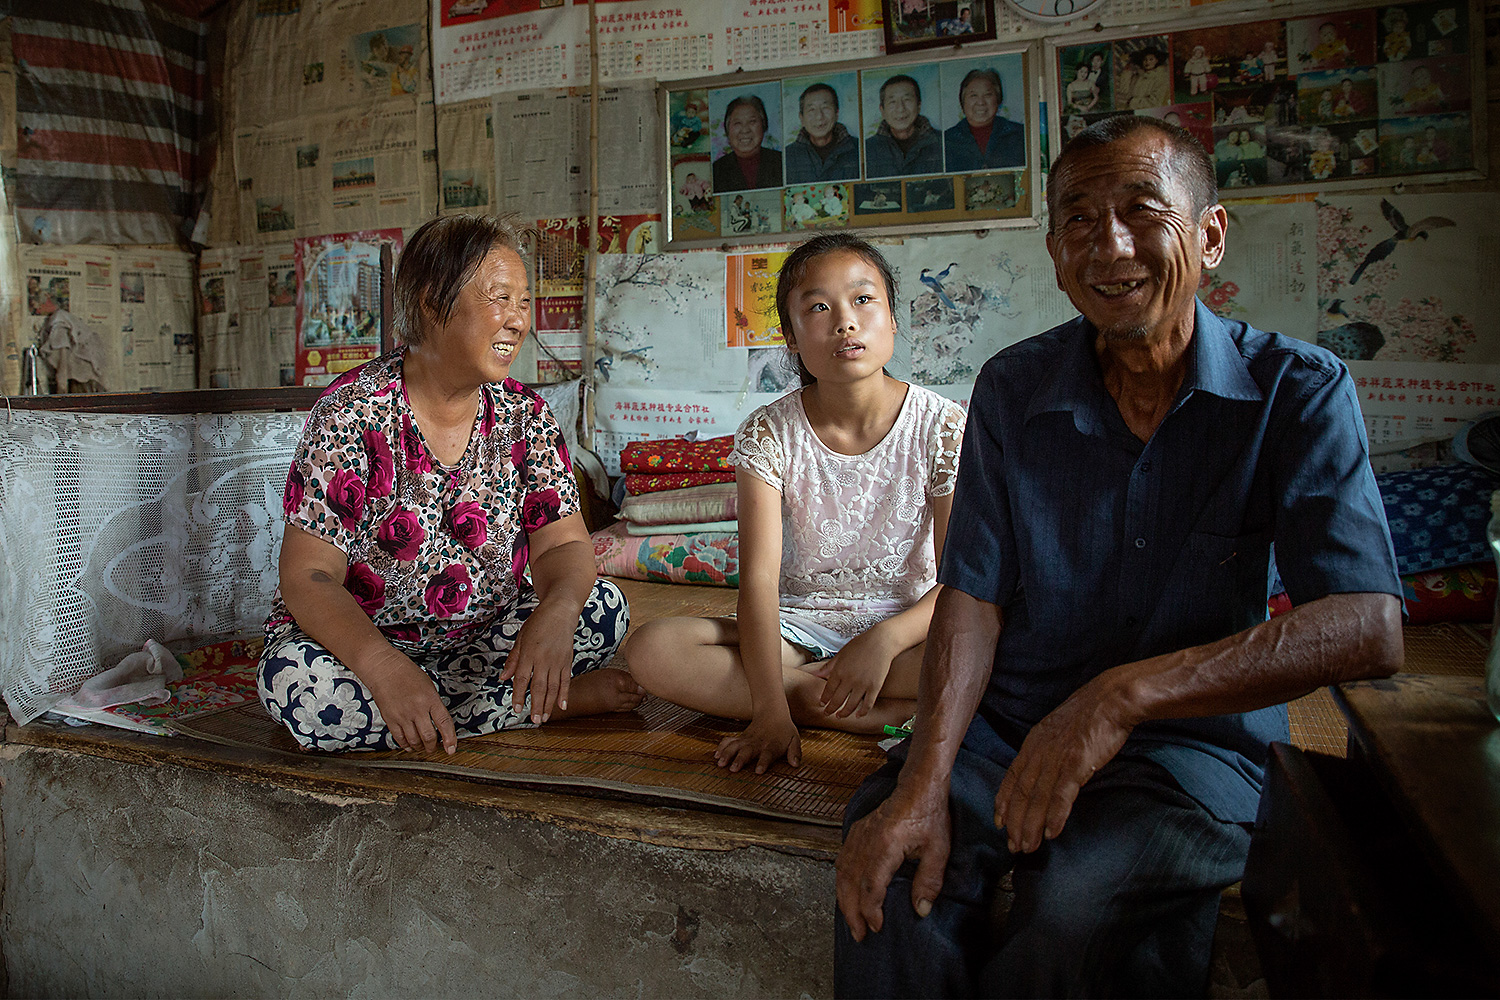 Swallow, 14, sits with her caretakers, her grandfather and his partner, in their home. Her father died in an accident when she was younger and her motherlives and works in Yuncheng, the closest biggest city, but never visits or contacts her. Swallow says her dream is to visit family in Yuncheng, less than 31 miles away. Swallow benefits from the support of one of China's growing number of 'Barefoot Social Workers'—community-selected individuals who are trained by UNICEF to provide child protection and welfare services in rural villages. Photo by Sharron Lovell @sharron_l / UNICEF China